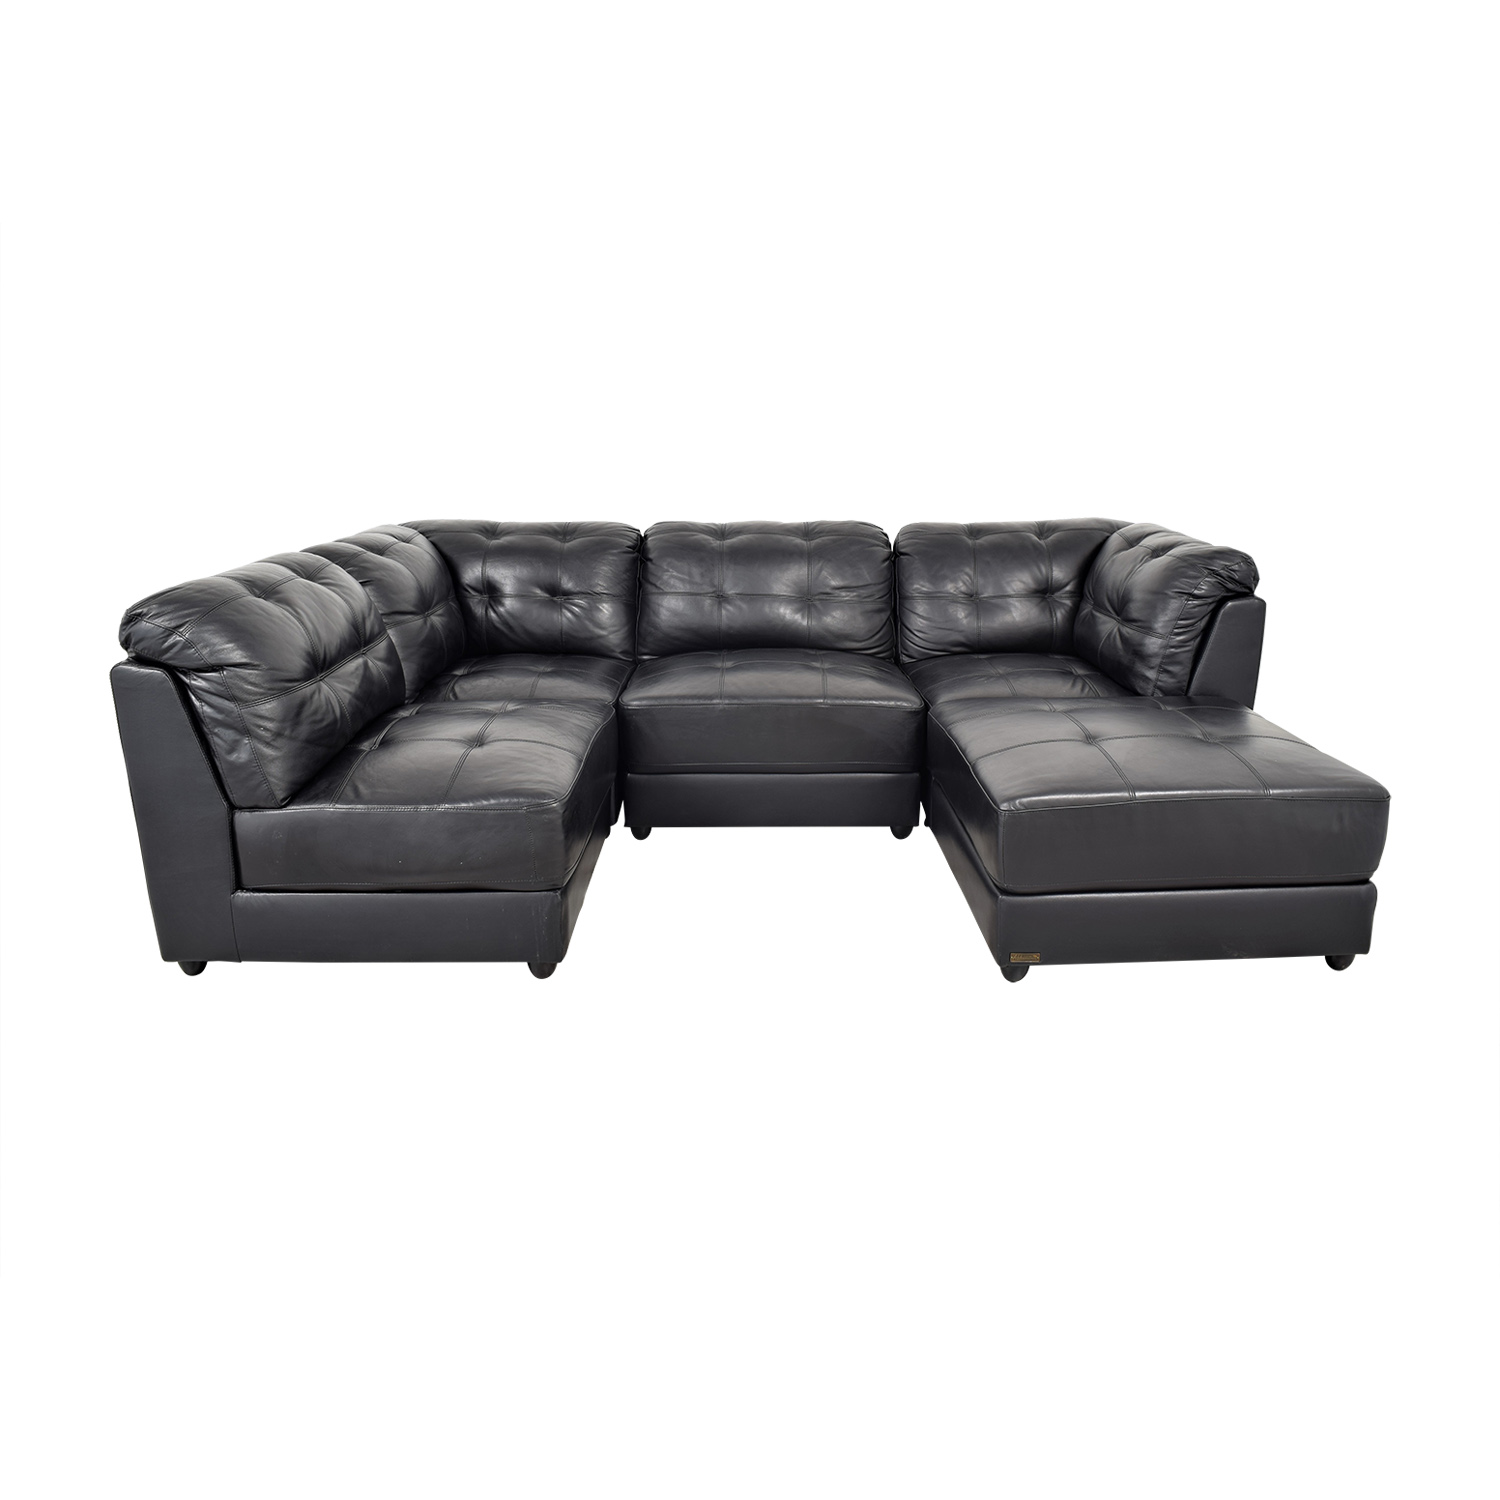 shop Abbyson Abbyson Ella 5-Piece Black Modular Leather Sectional with Ottoman online